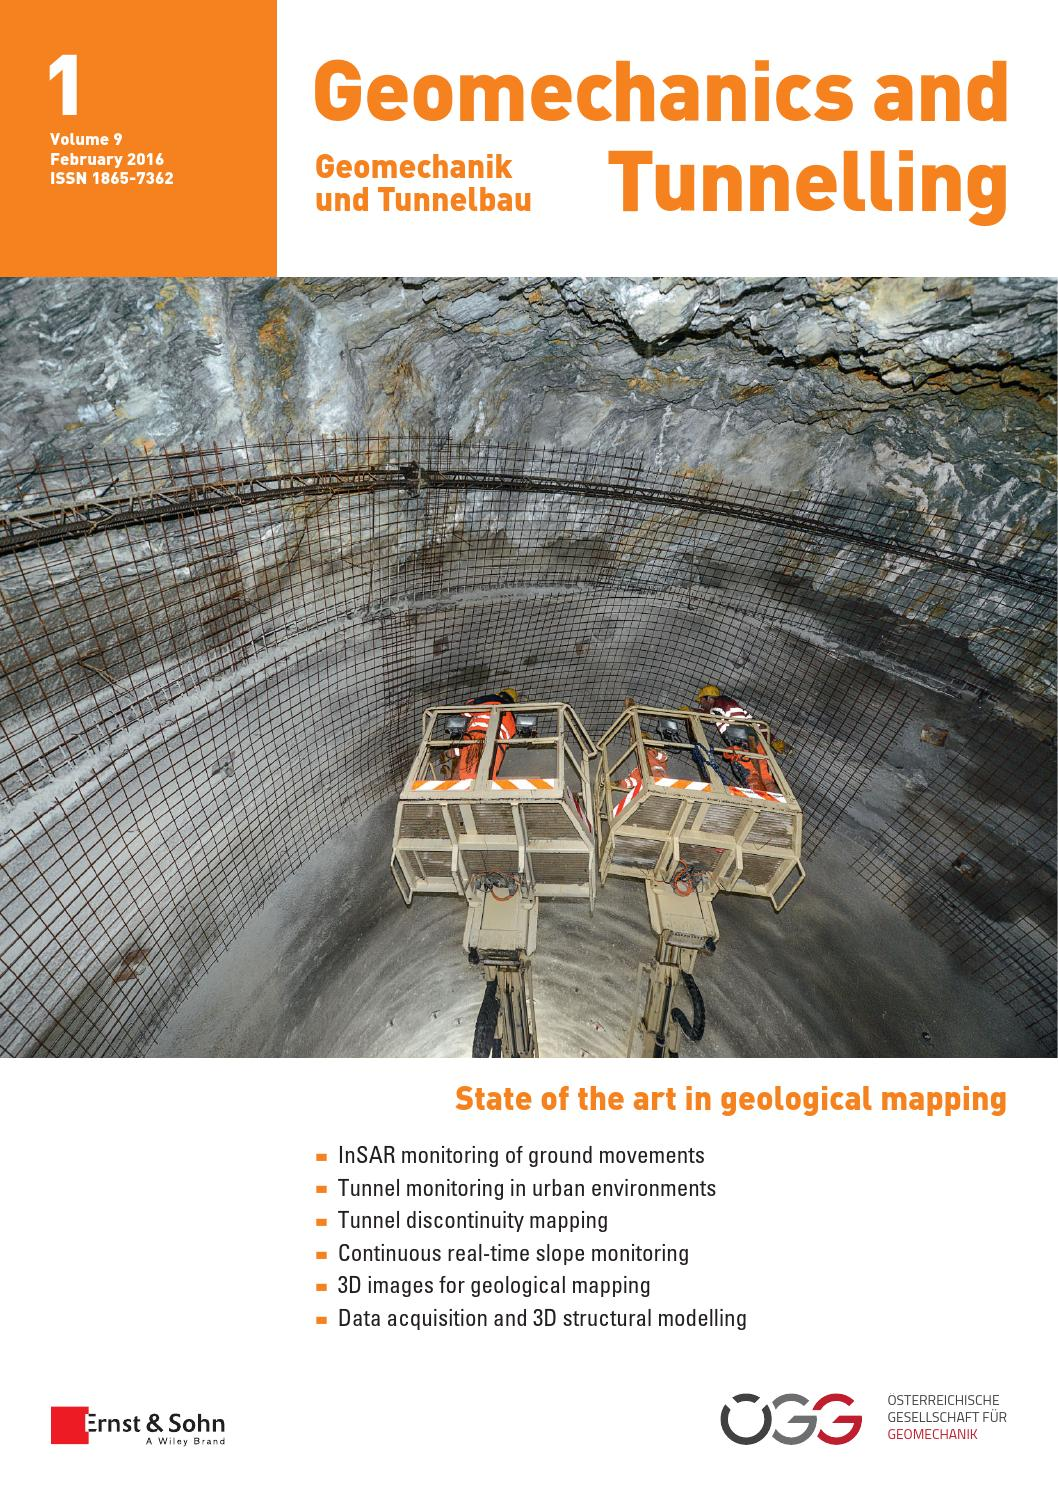 Geomechanics and Tunnelling 01/2016 free sample copy by Ernst ...